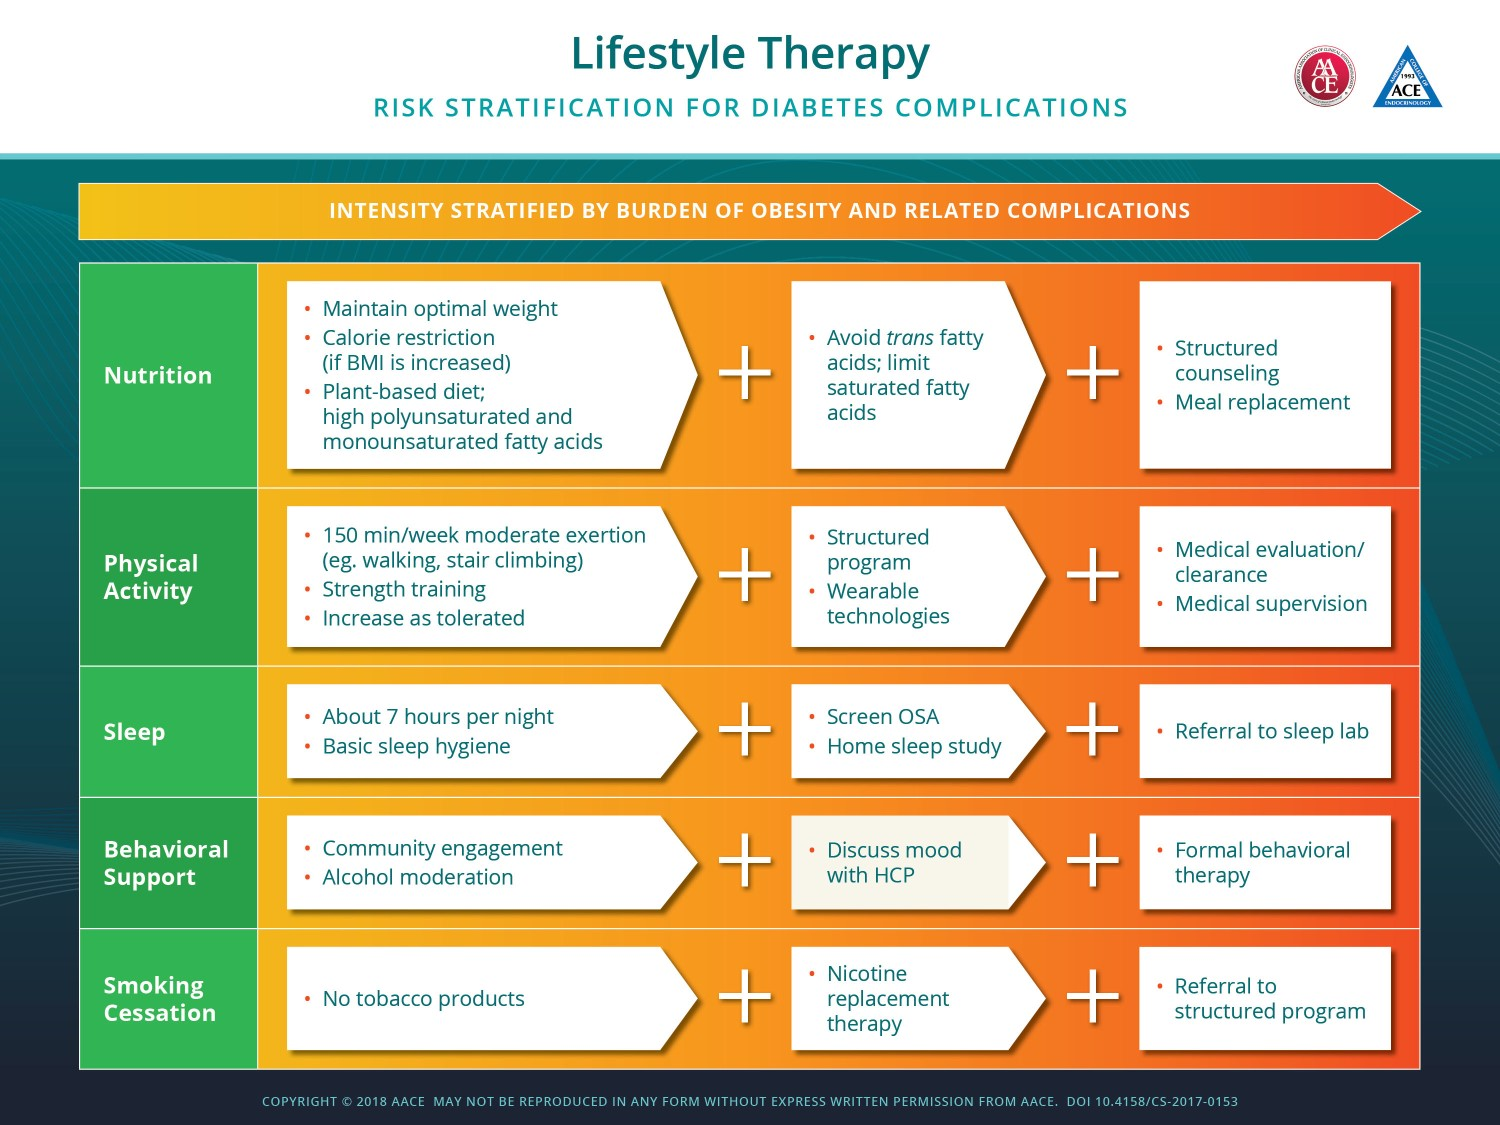 Lifestyle Therapy for Diabetes - AACE 2018 Guidelines  #Lifestyle #Modifications #Therapy #Diabetes #DM2 #AACE #2018 #Guidelines #Management